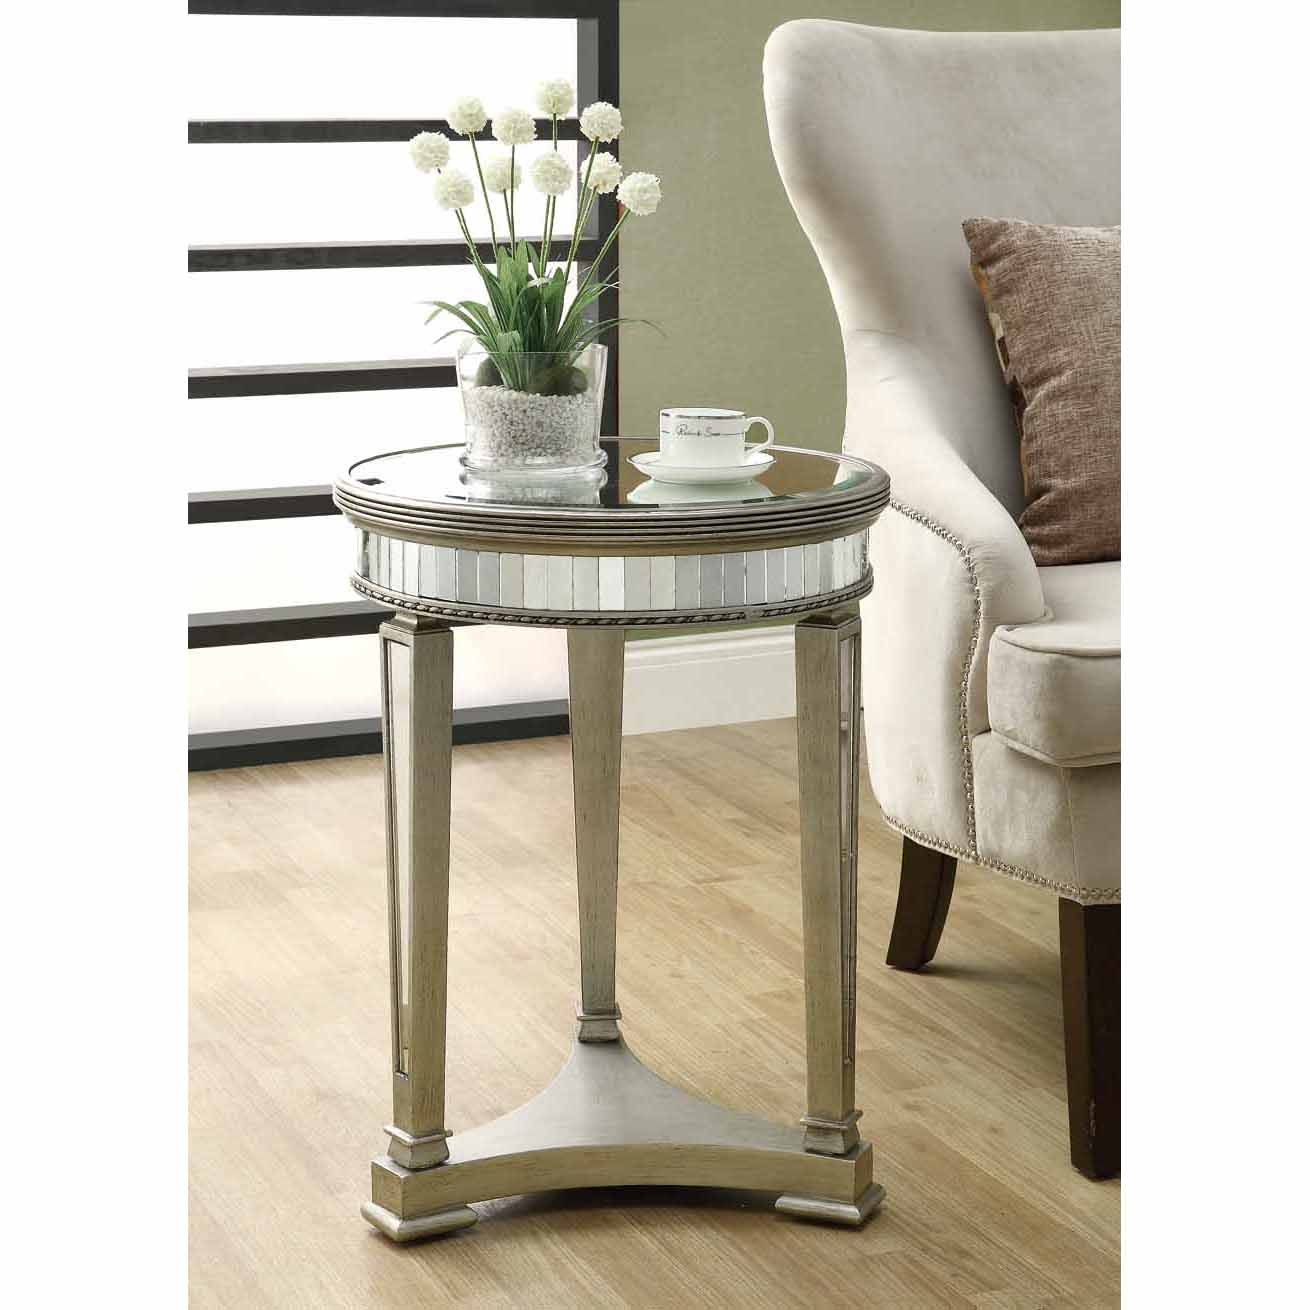 Mirrored 20 Inch Dia Accent Table Free Shipping Today